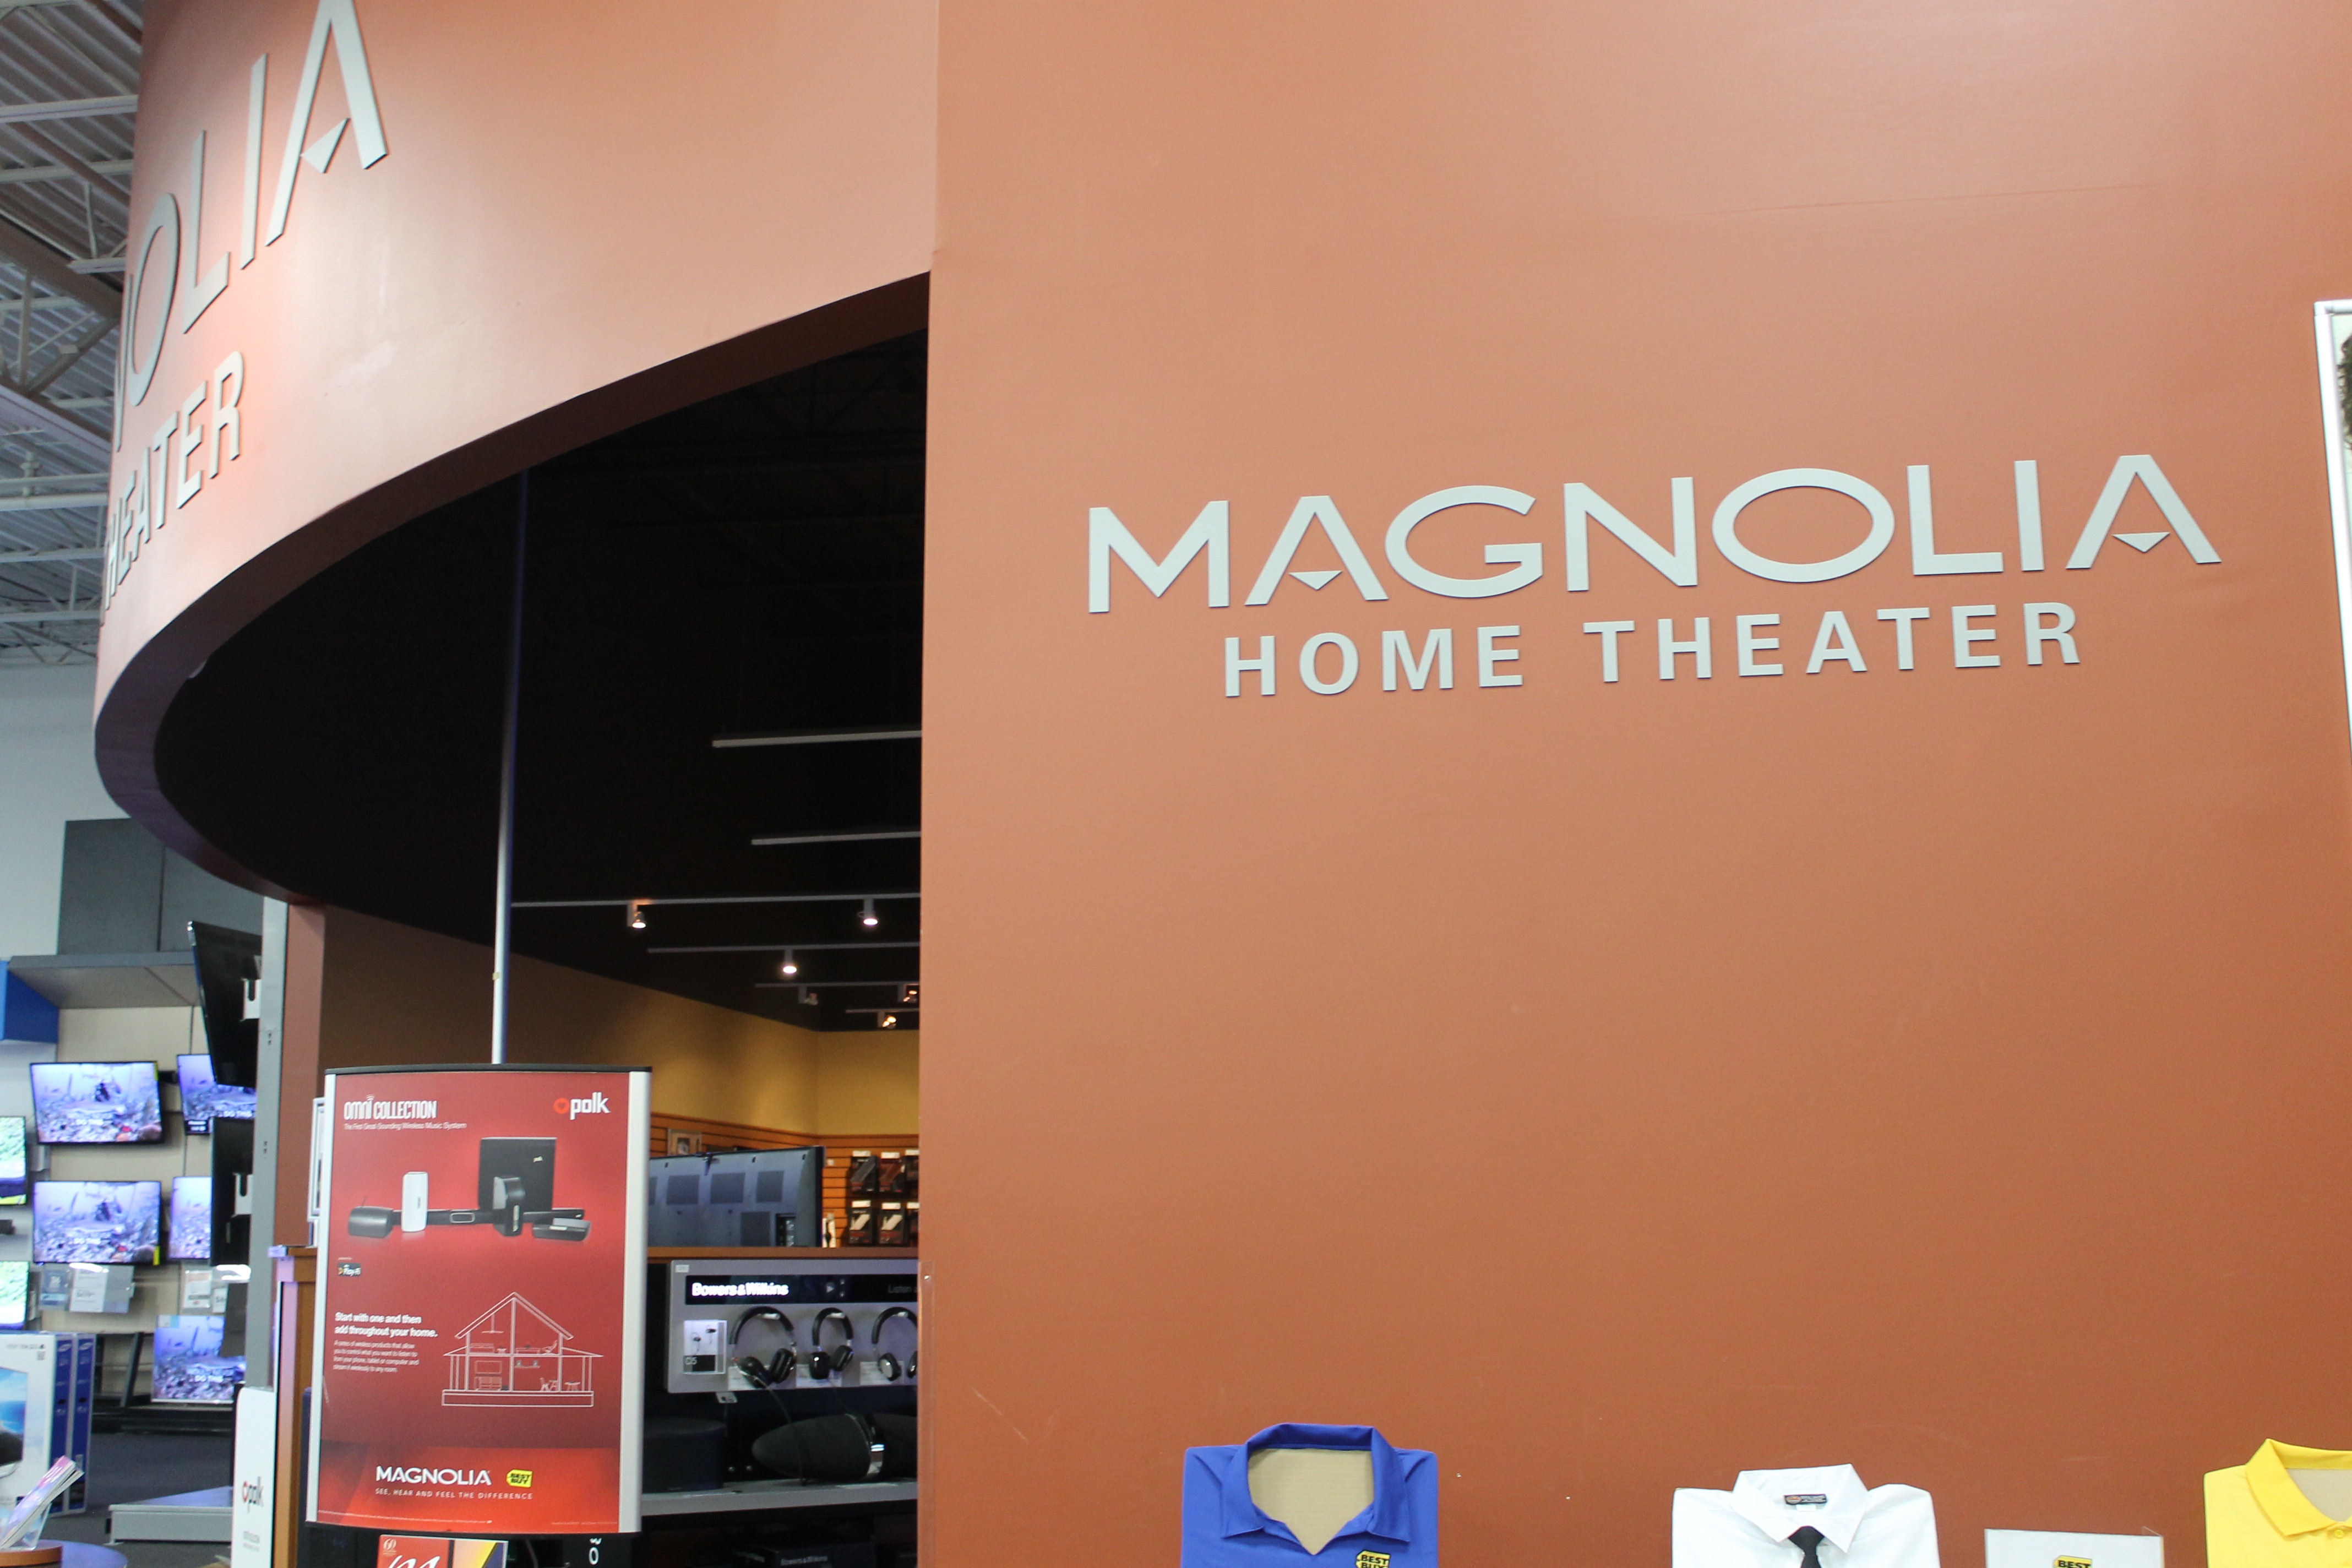 dallas magnolia home theater at best buy - Best Buy Christmas Hours 2014